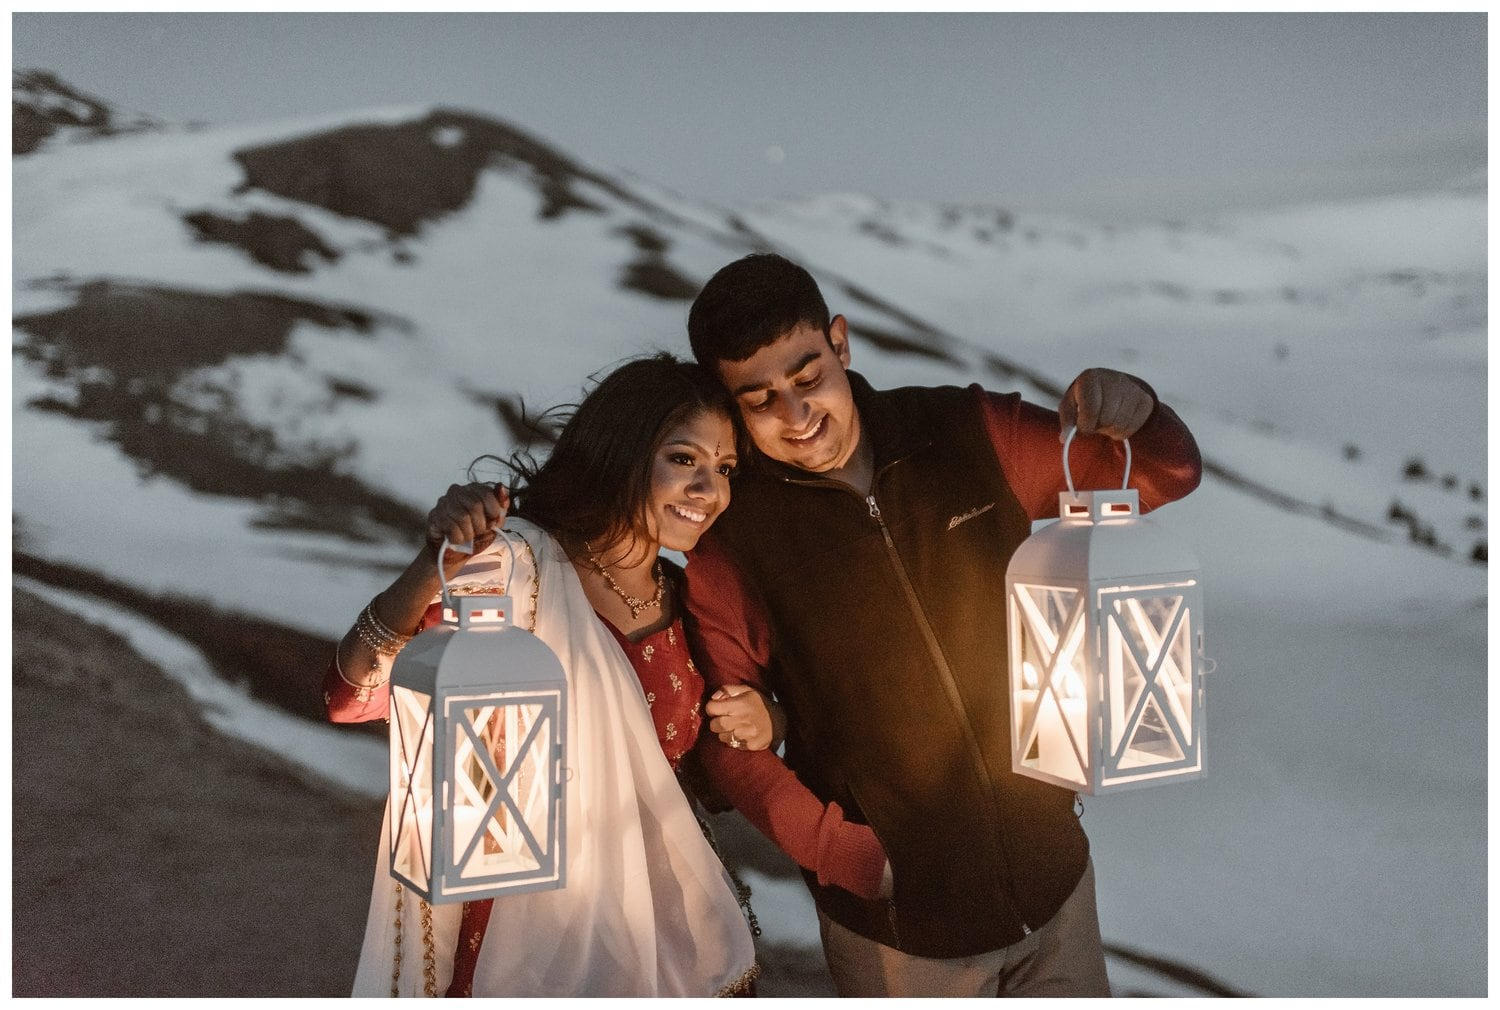 A bride and groom hold lanterns on their elopement day. They are standing with snowy mountains in the back.